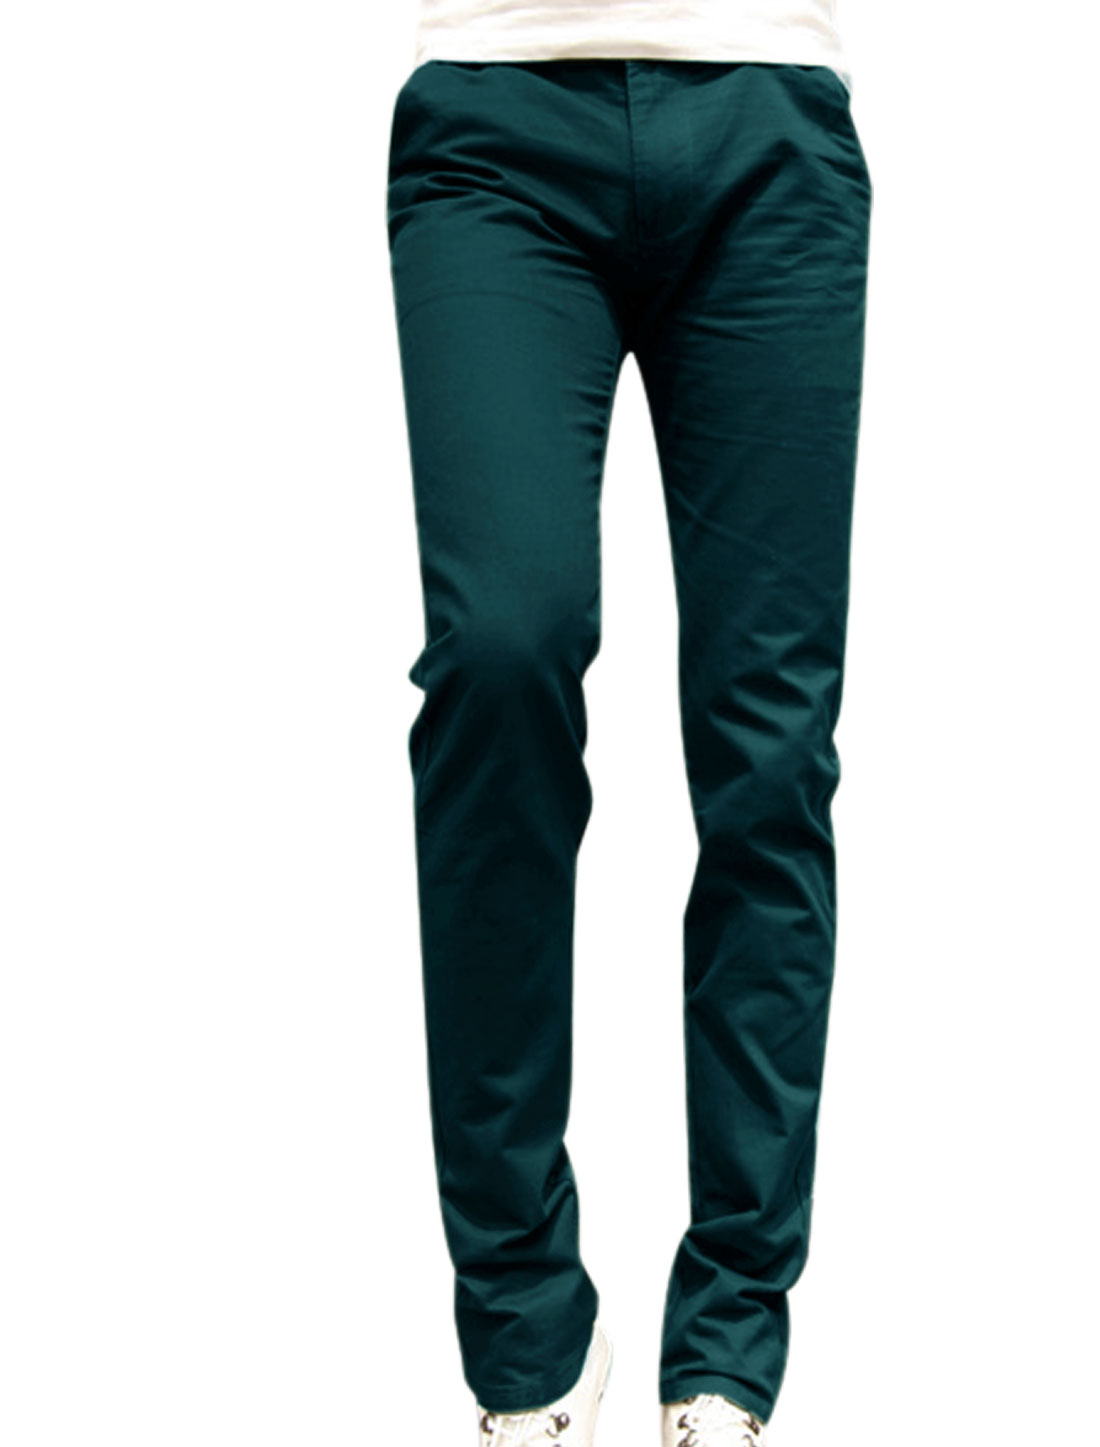 Men New Style Double Pocket Sides Zip Fly Navy Blue Straight Leg Pants W30